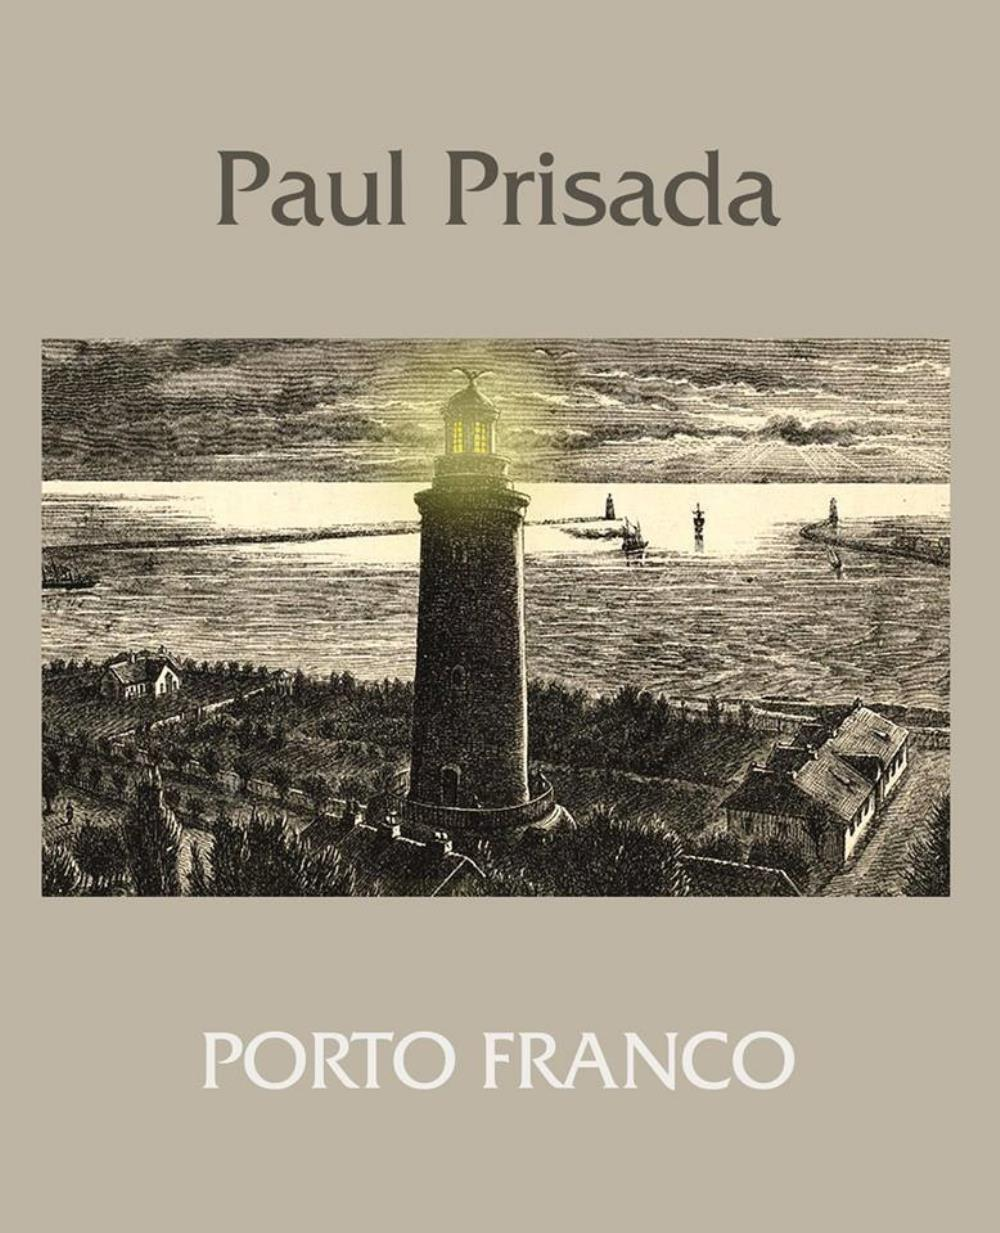 Accent Paul Prisada - Porto Franco album cover